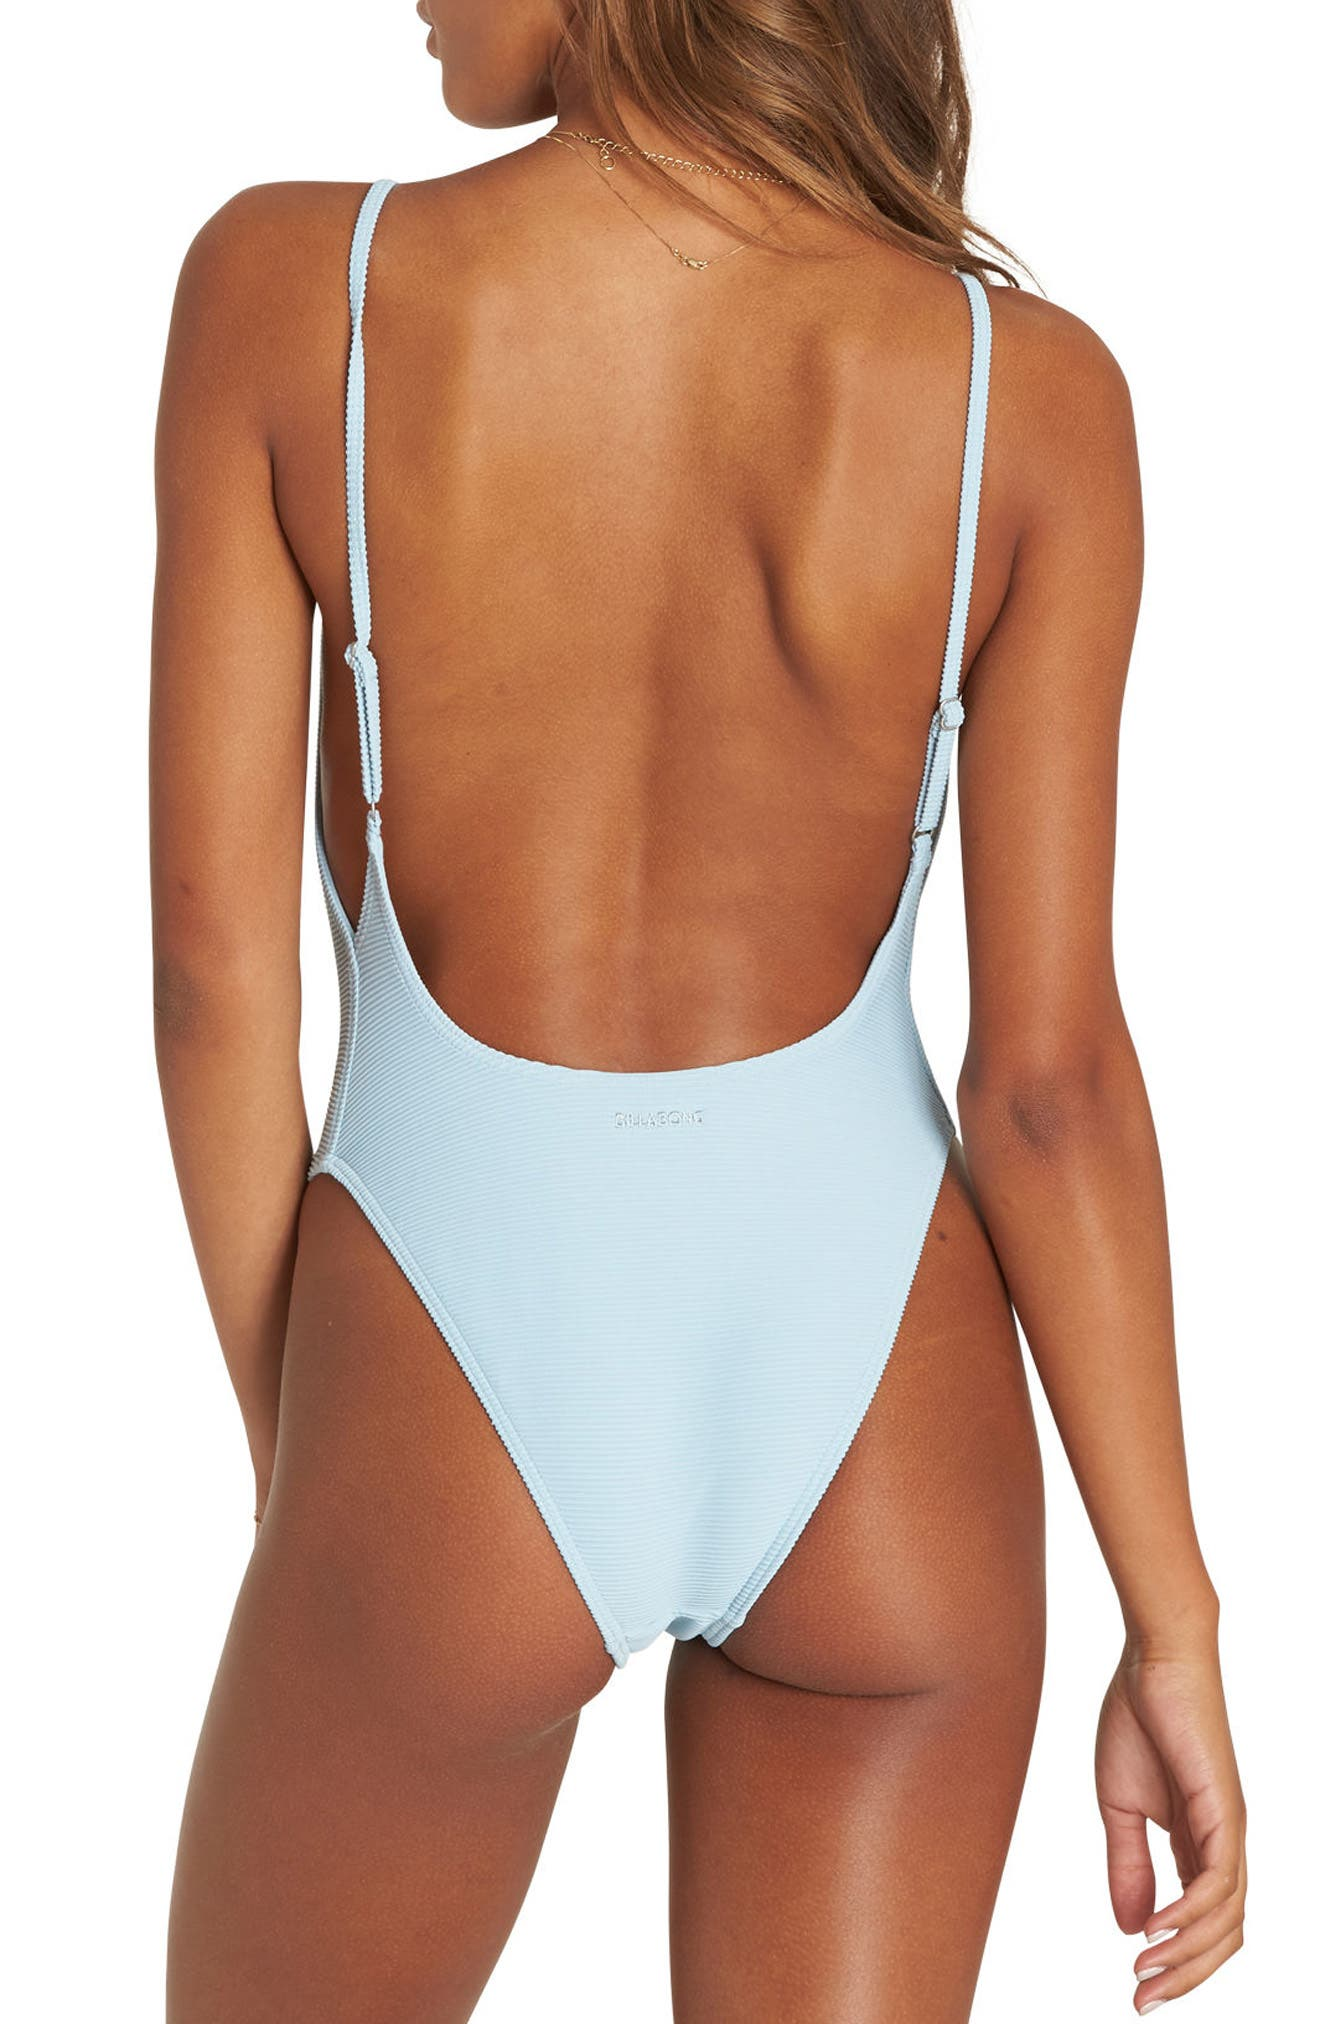 Tanlines One-Piece Swimsuit,                             Alternate thumbnail 2, color,                             Cool Water